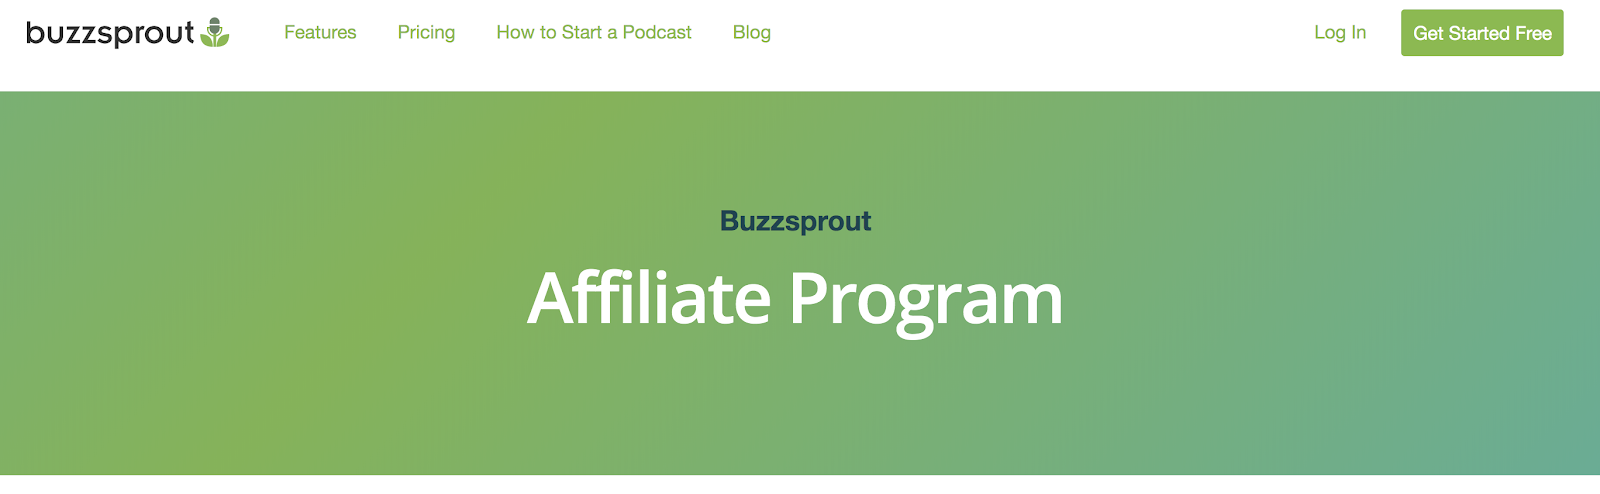 Buzzsprout Affiliate Program Landing Page (Screenshot)